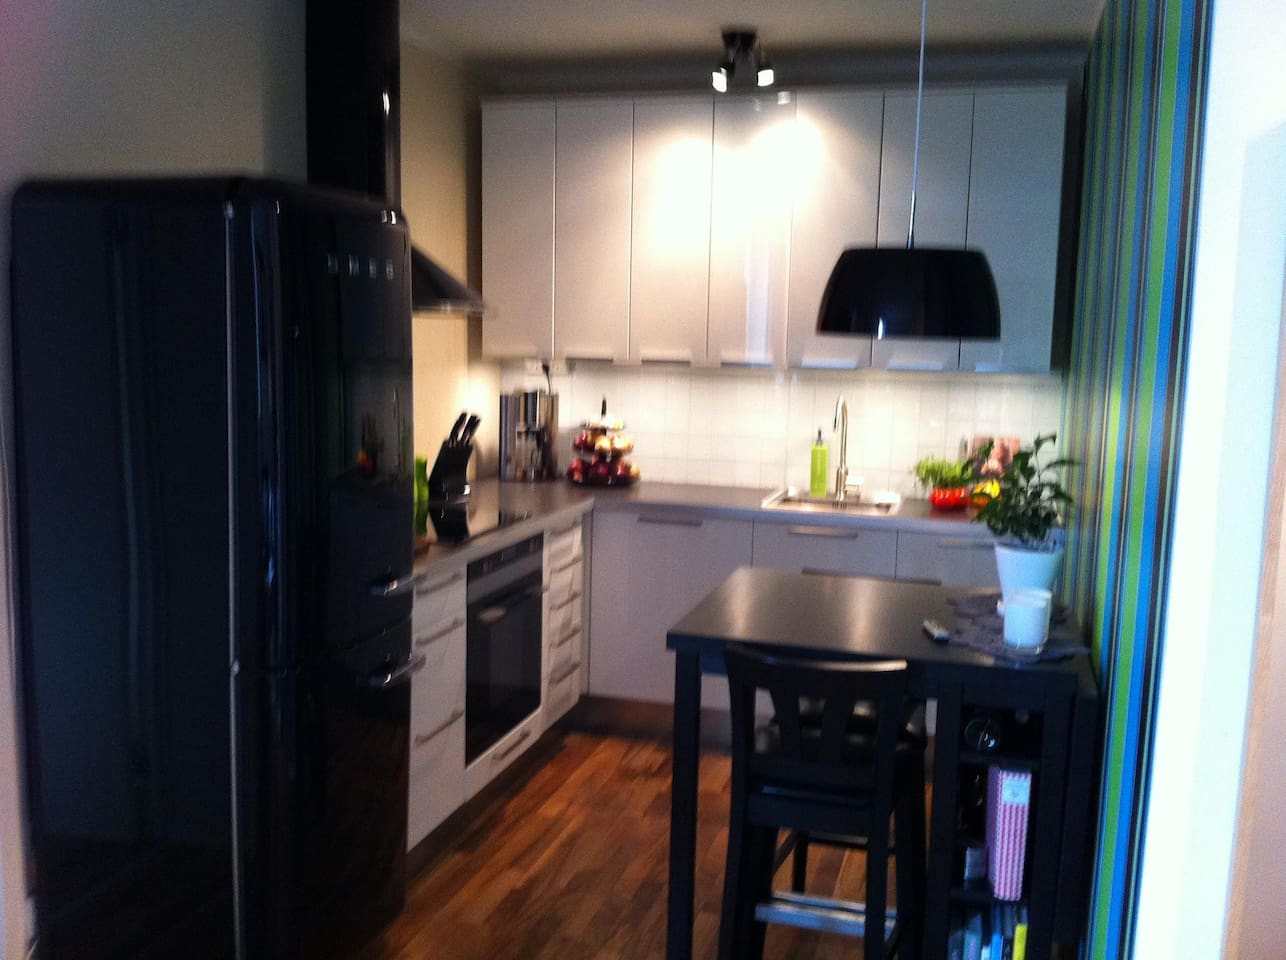 Modern efficient kitchen for you to wake up into homemade breakfast and coffee.